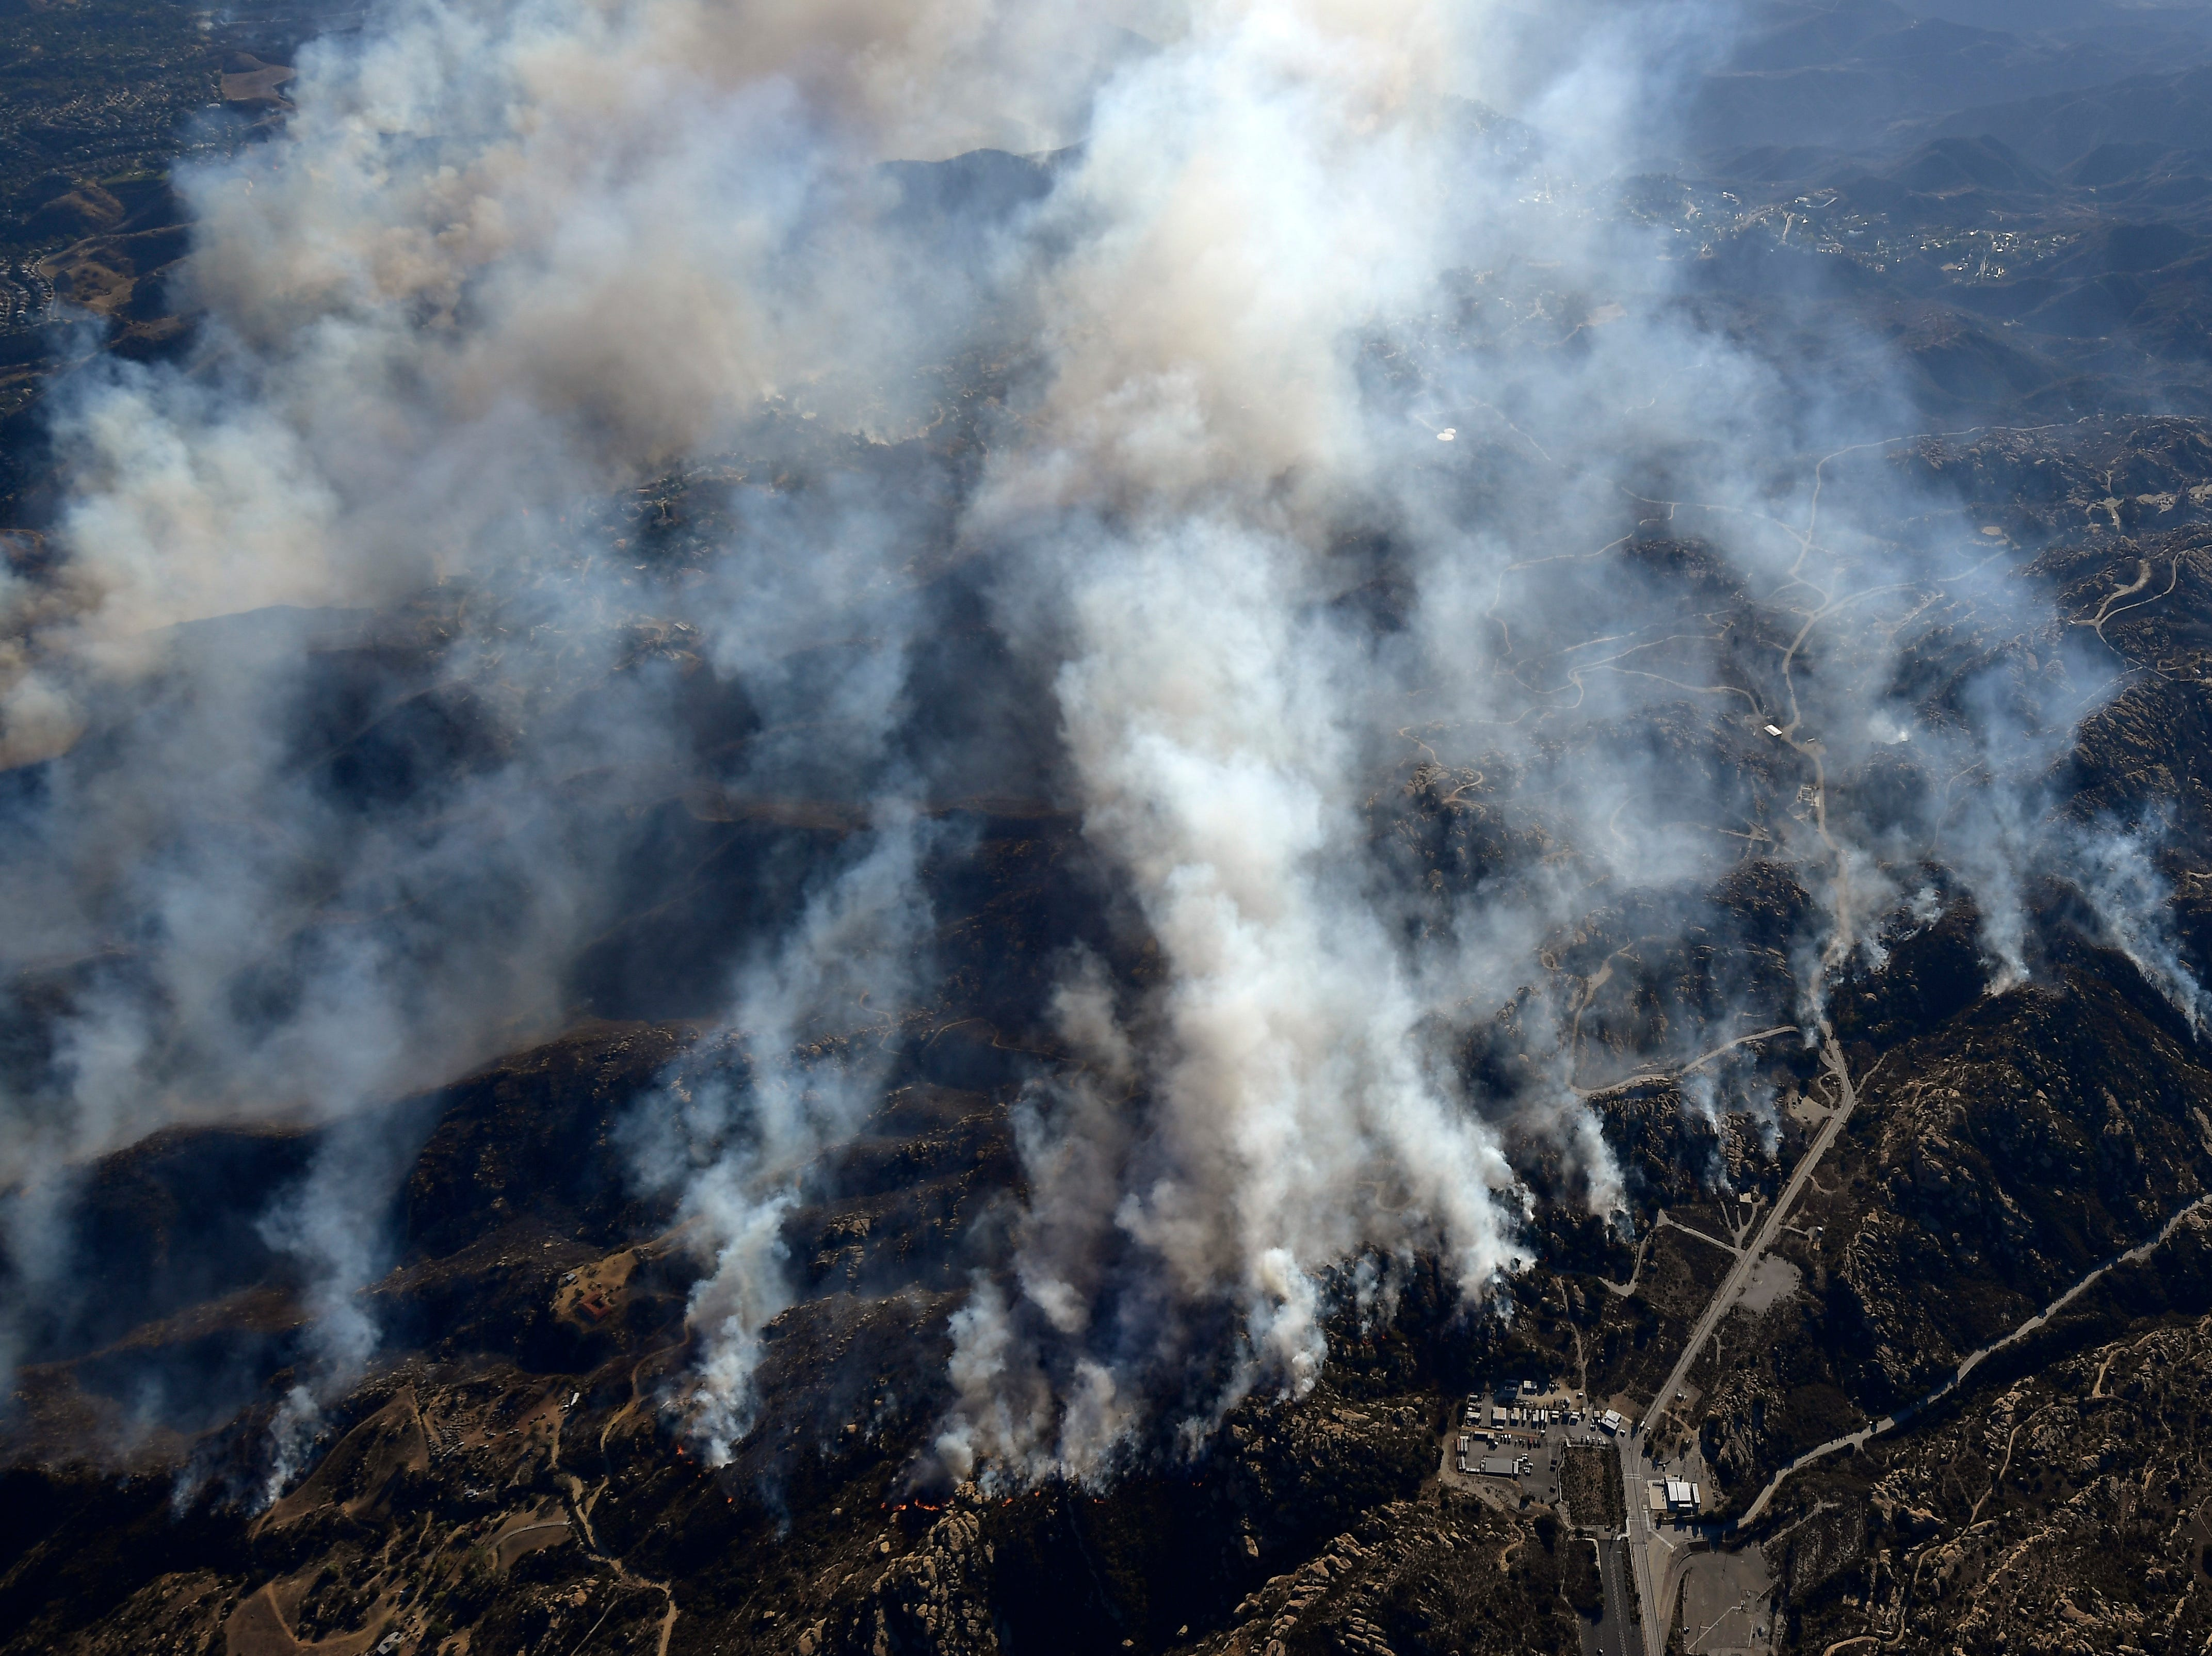 Smoke rises from the Woolsey Fire on Friday, as seen from a helicopter over Chatsworth.